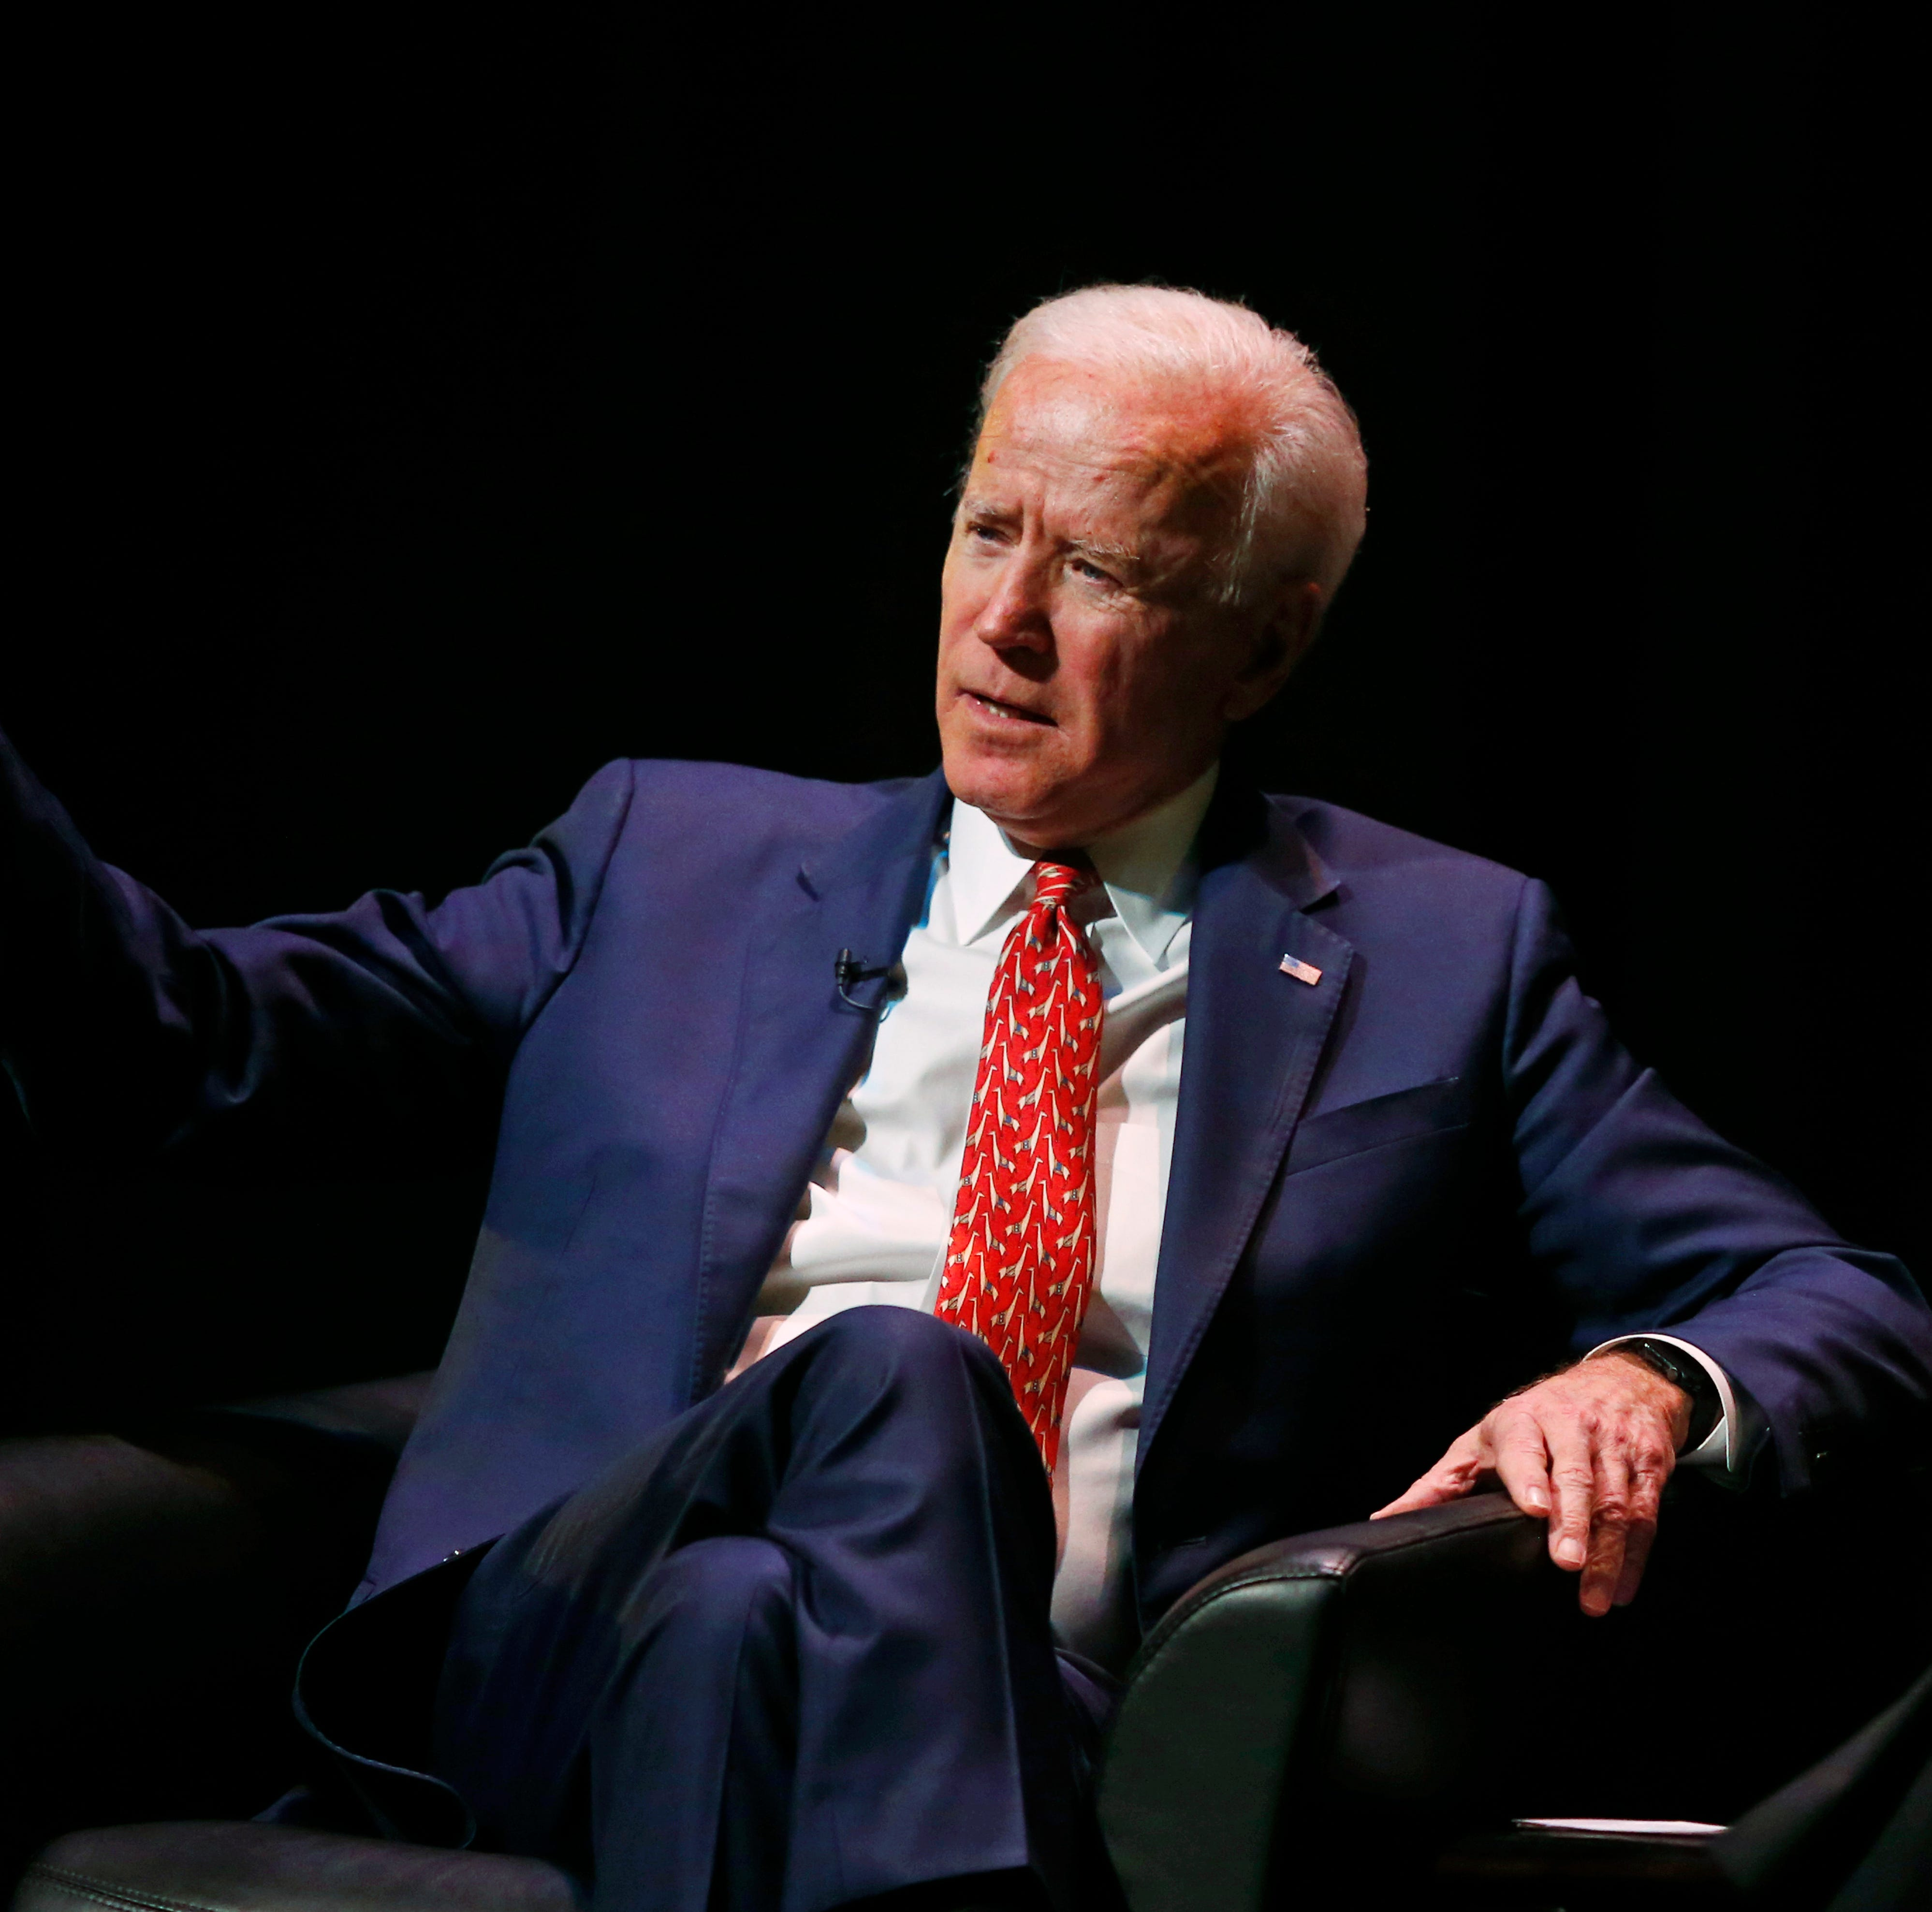 Former Vice President Joe Biden speaks at the University of Utah Thursday Dec. 13, 2018, in Salt Lake City. Biden says he initially refused to run with then-presidential candidate Barack Obama a decade ago, but his family ultimately convinced him he had to support an African-American candidate with a real chance of winning. Biden was greeted with a standing ovation when he spoke amid speculation about whether he'll launch his own campaign for president. He did not directly address the possibility of another run in the speech that marks his final public event for 2018. (AP Photo/Rick Bowmer)